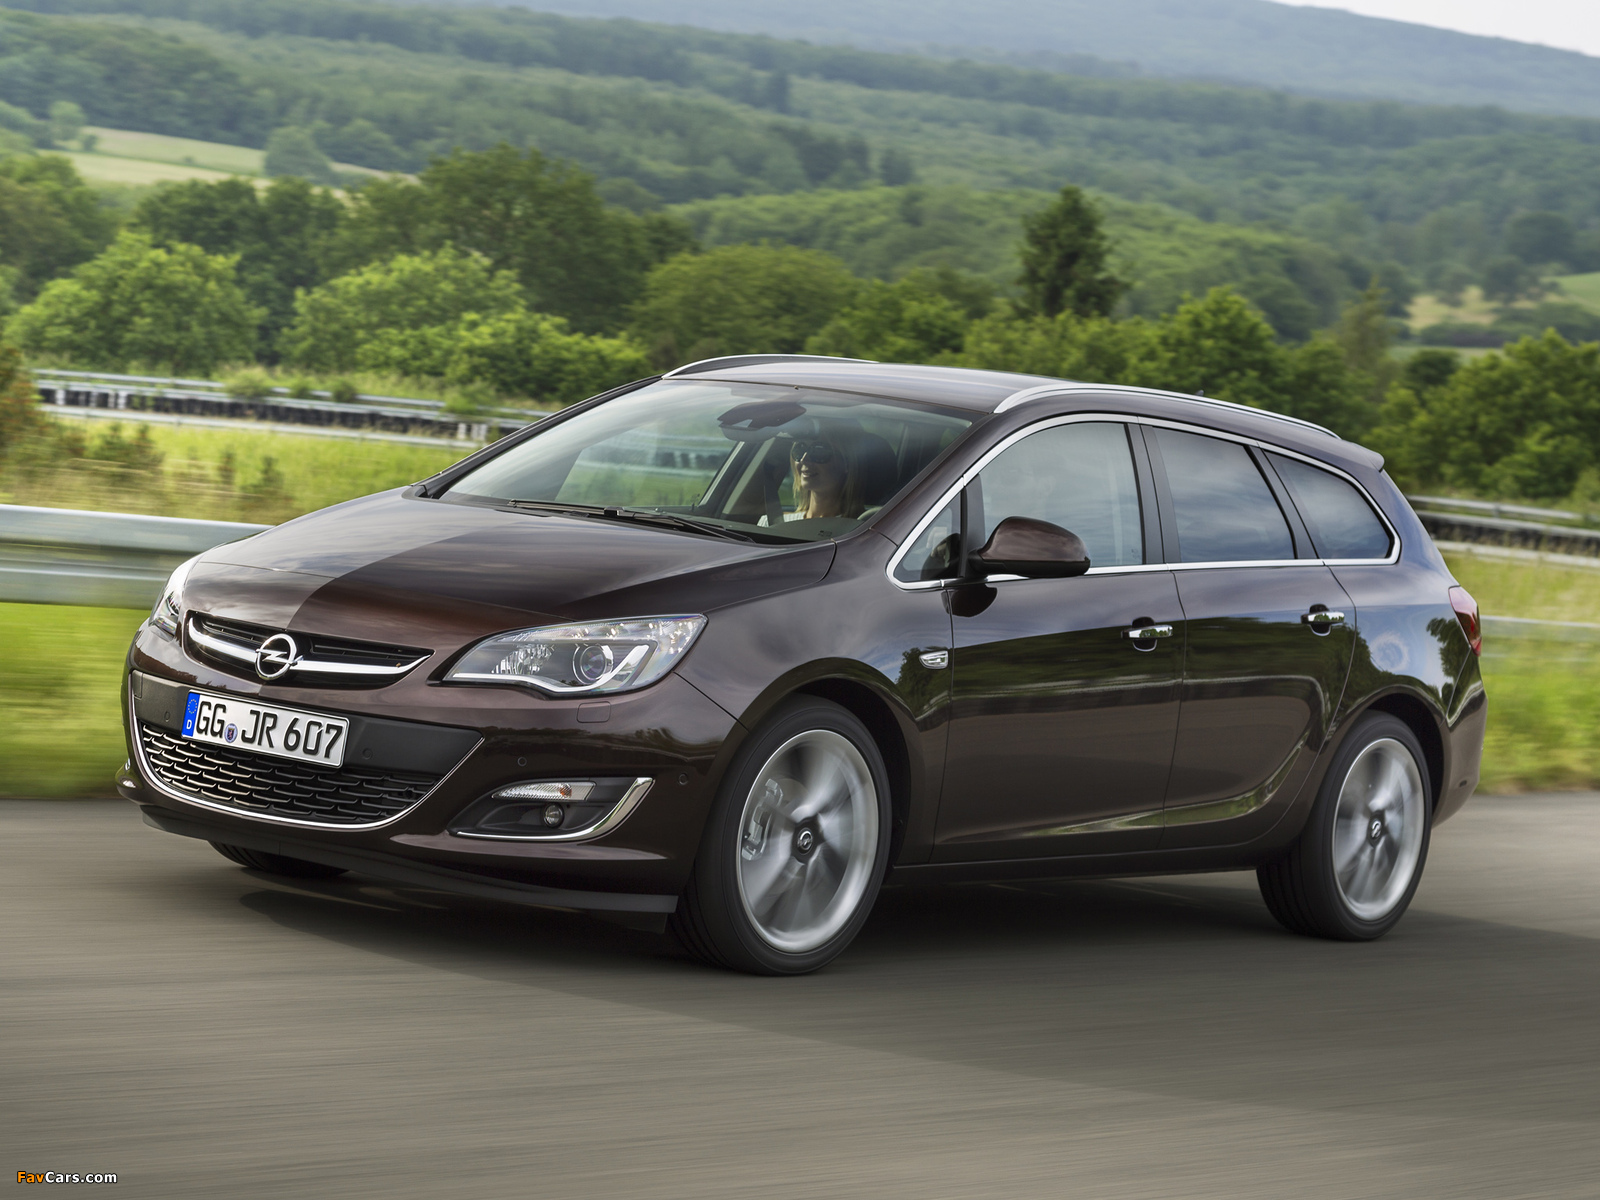 Opel Astra Sports Tourer (J) 2012 pictures (1600 x 1200)